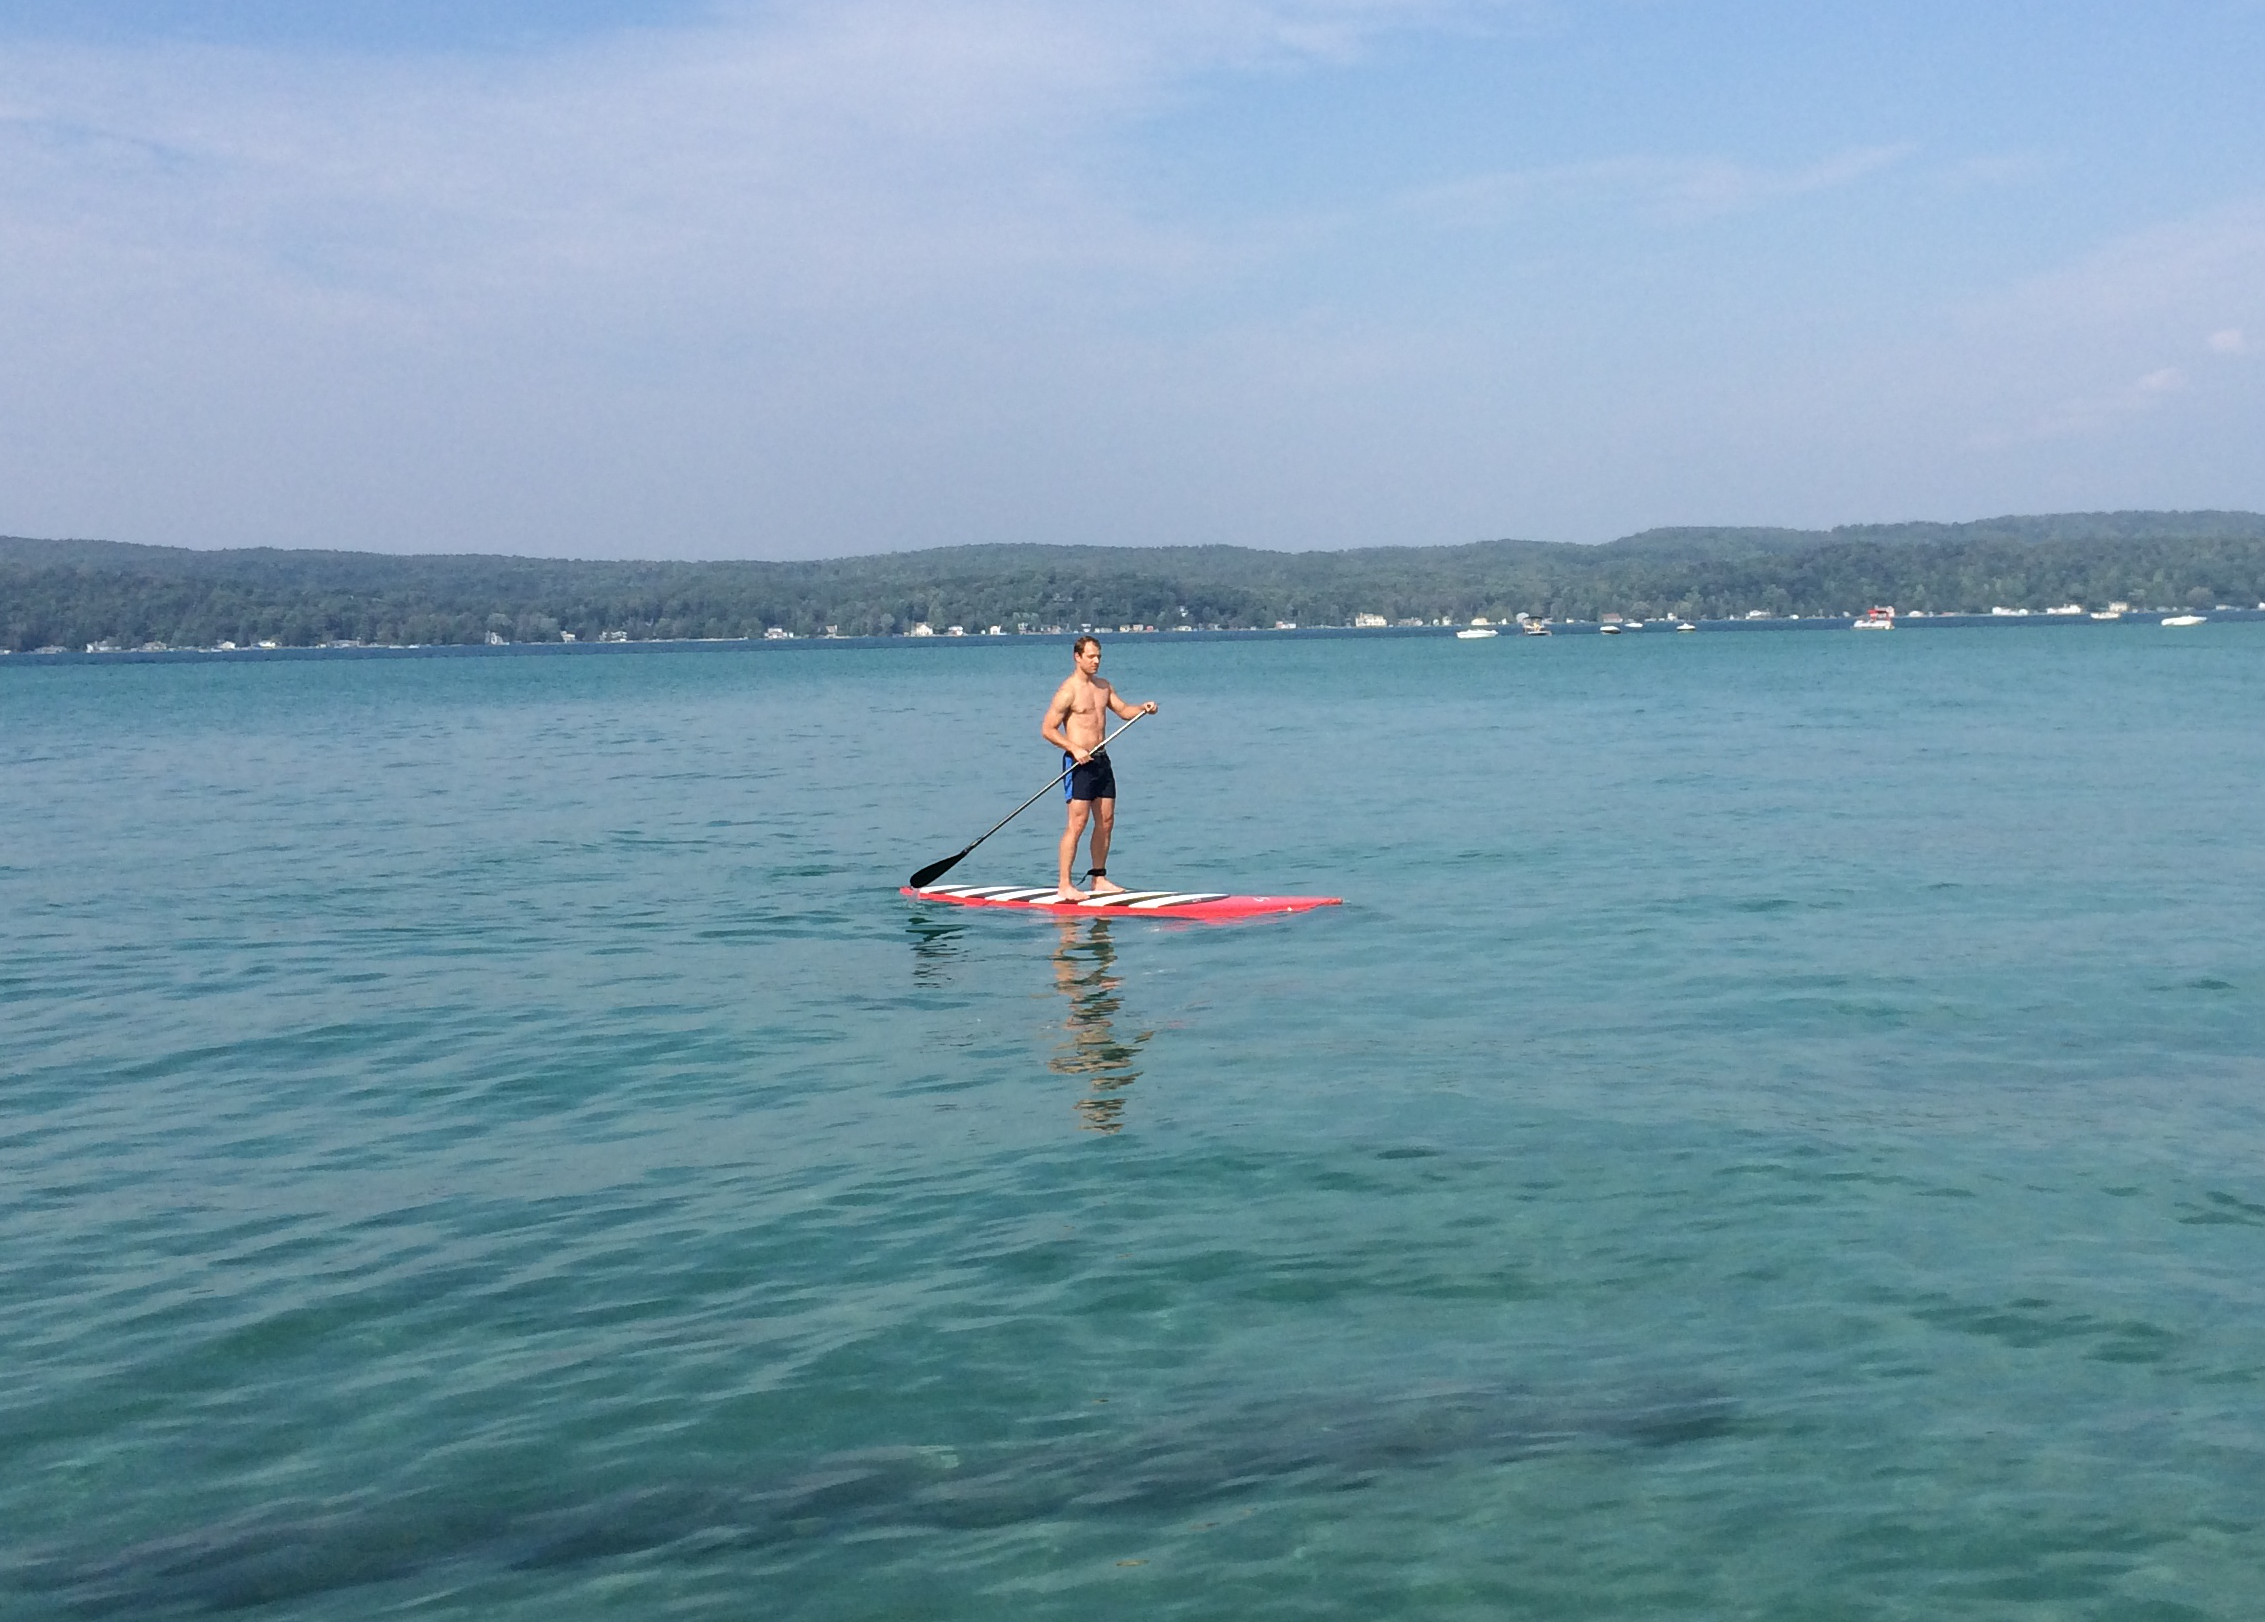 Jsb paddle boarding at Crystal Lake 1